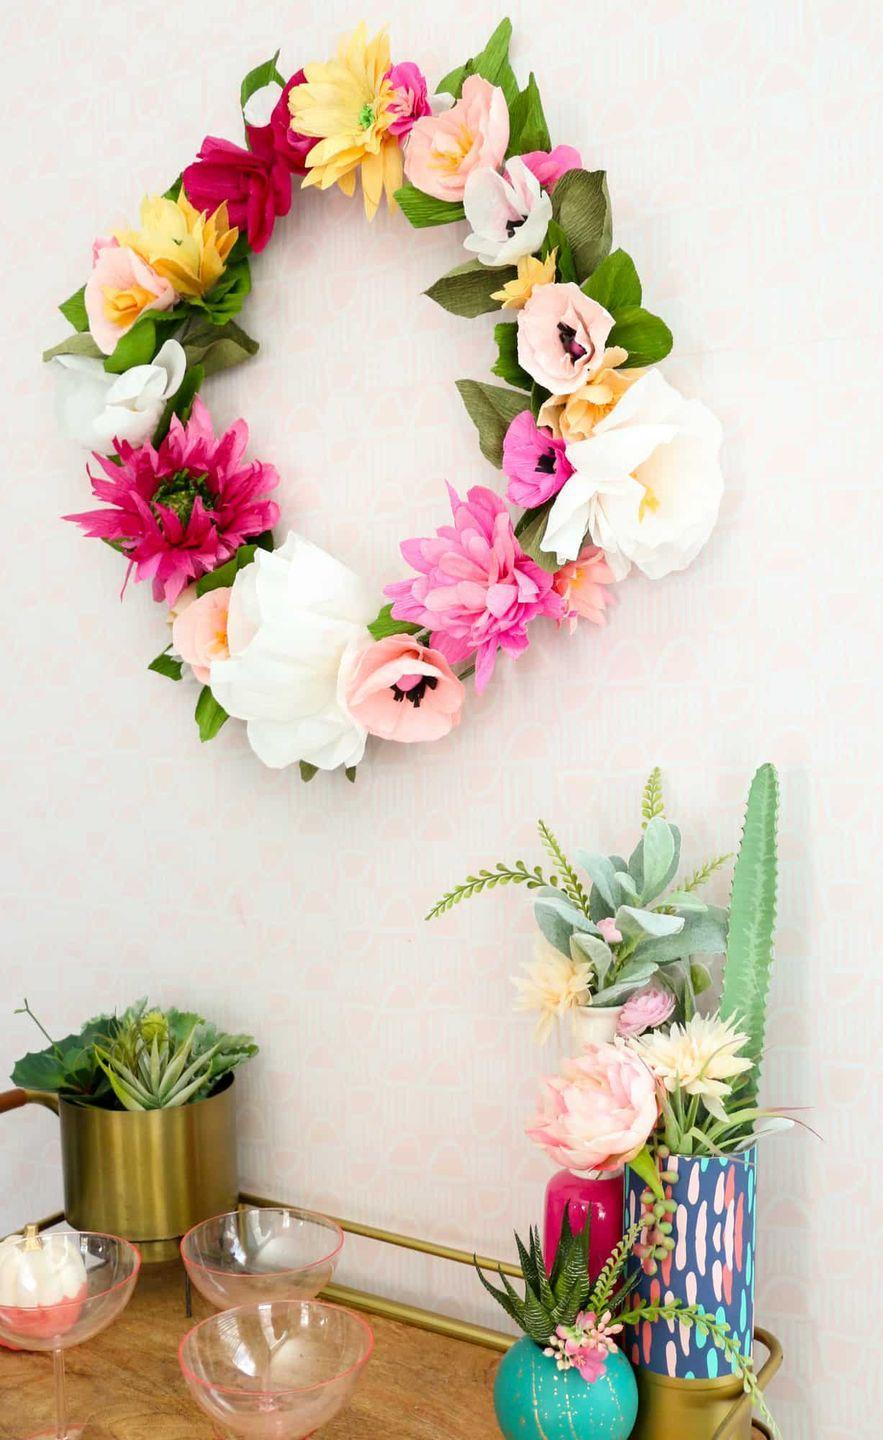 """<p>It's funny how much paper flowers can look just like the real deal, particularly when you use crêpe paper to craft them. This flowery wreath is just the thing to complete your Easter décor. </p><p><strong>Get the tutorial at <a href=""""https://abeautifulmess.com/how-to-make-a-paper-flower-wreath/"""" rel=""""nofollow noopener"""" target=""""_blank"""" data-ylk=""""slk:A Beautiful Mess"""" class=""""link rapid-noclick-resp"""">A Beautiful Mess</a>.</strong></p><p><a class=""""link rapid-noclick-resp"""" href=""""https://go.redirectingat.com?id=74968X1596630&url=https%3A%2F%2Fwww.walmart.com%2Fip%2FForest-Green-Premium-Crepe-Paper-19-X-250cm-by-Paper-Mart%2F277756745&sref=https%3A%2F%2Fwww.thepioneerwoman.com%2Fhome-lifestyle%2Fcrafts-diy%2Fg35698457%2Fdiy-easter-wreath-ideas%2F"""" rel=""""nofollow noopener"""" target=""""_blank"""" data-ylk=""""slk:SHOP CREPE PAPER"""">SHOP CREPE PAPER</a></p>"""